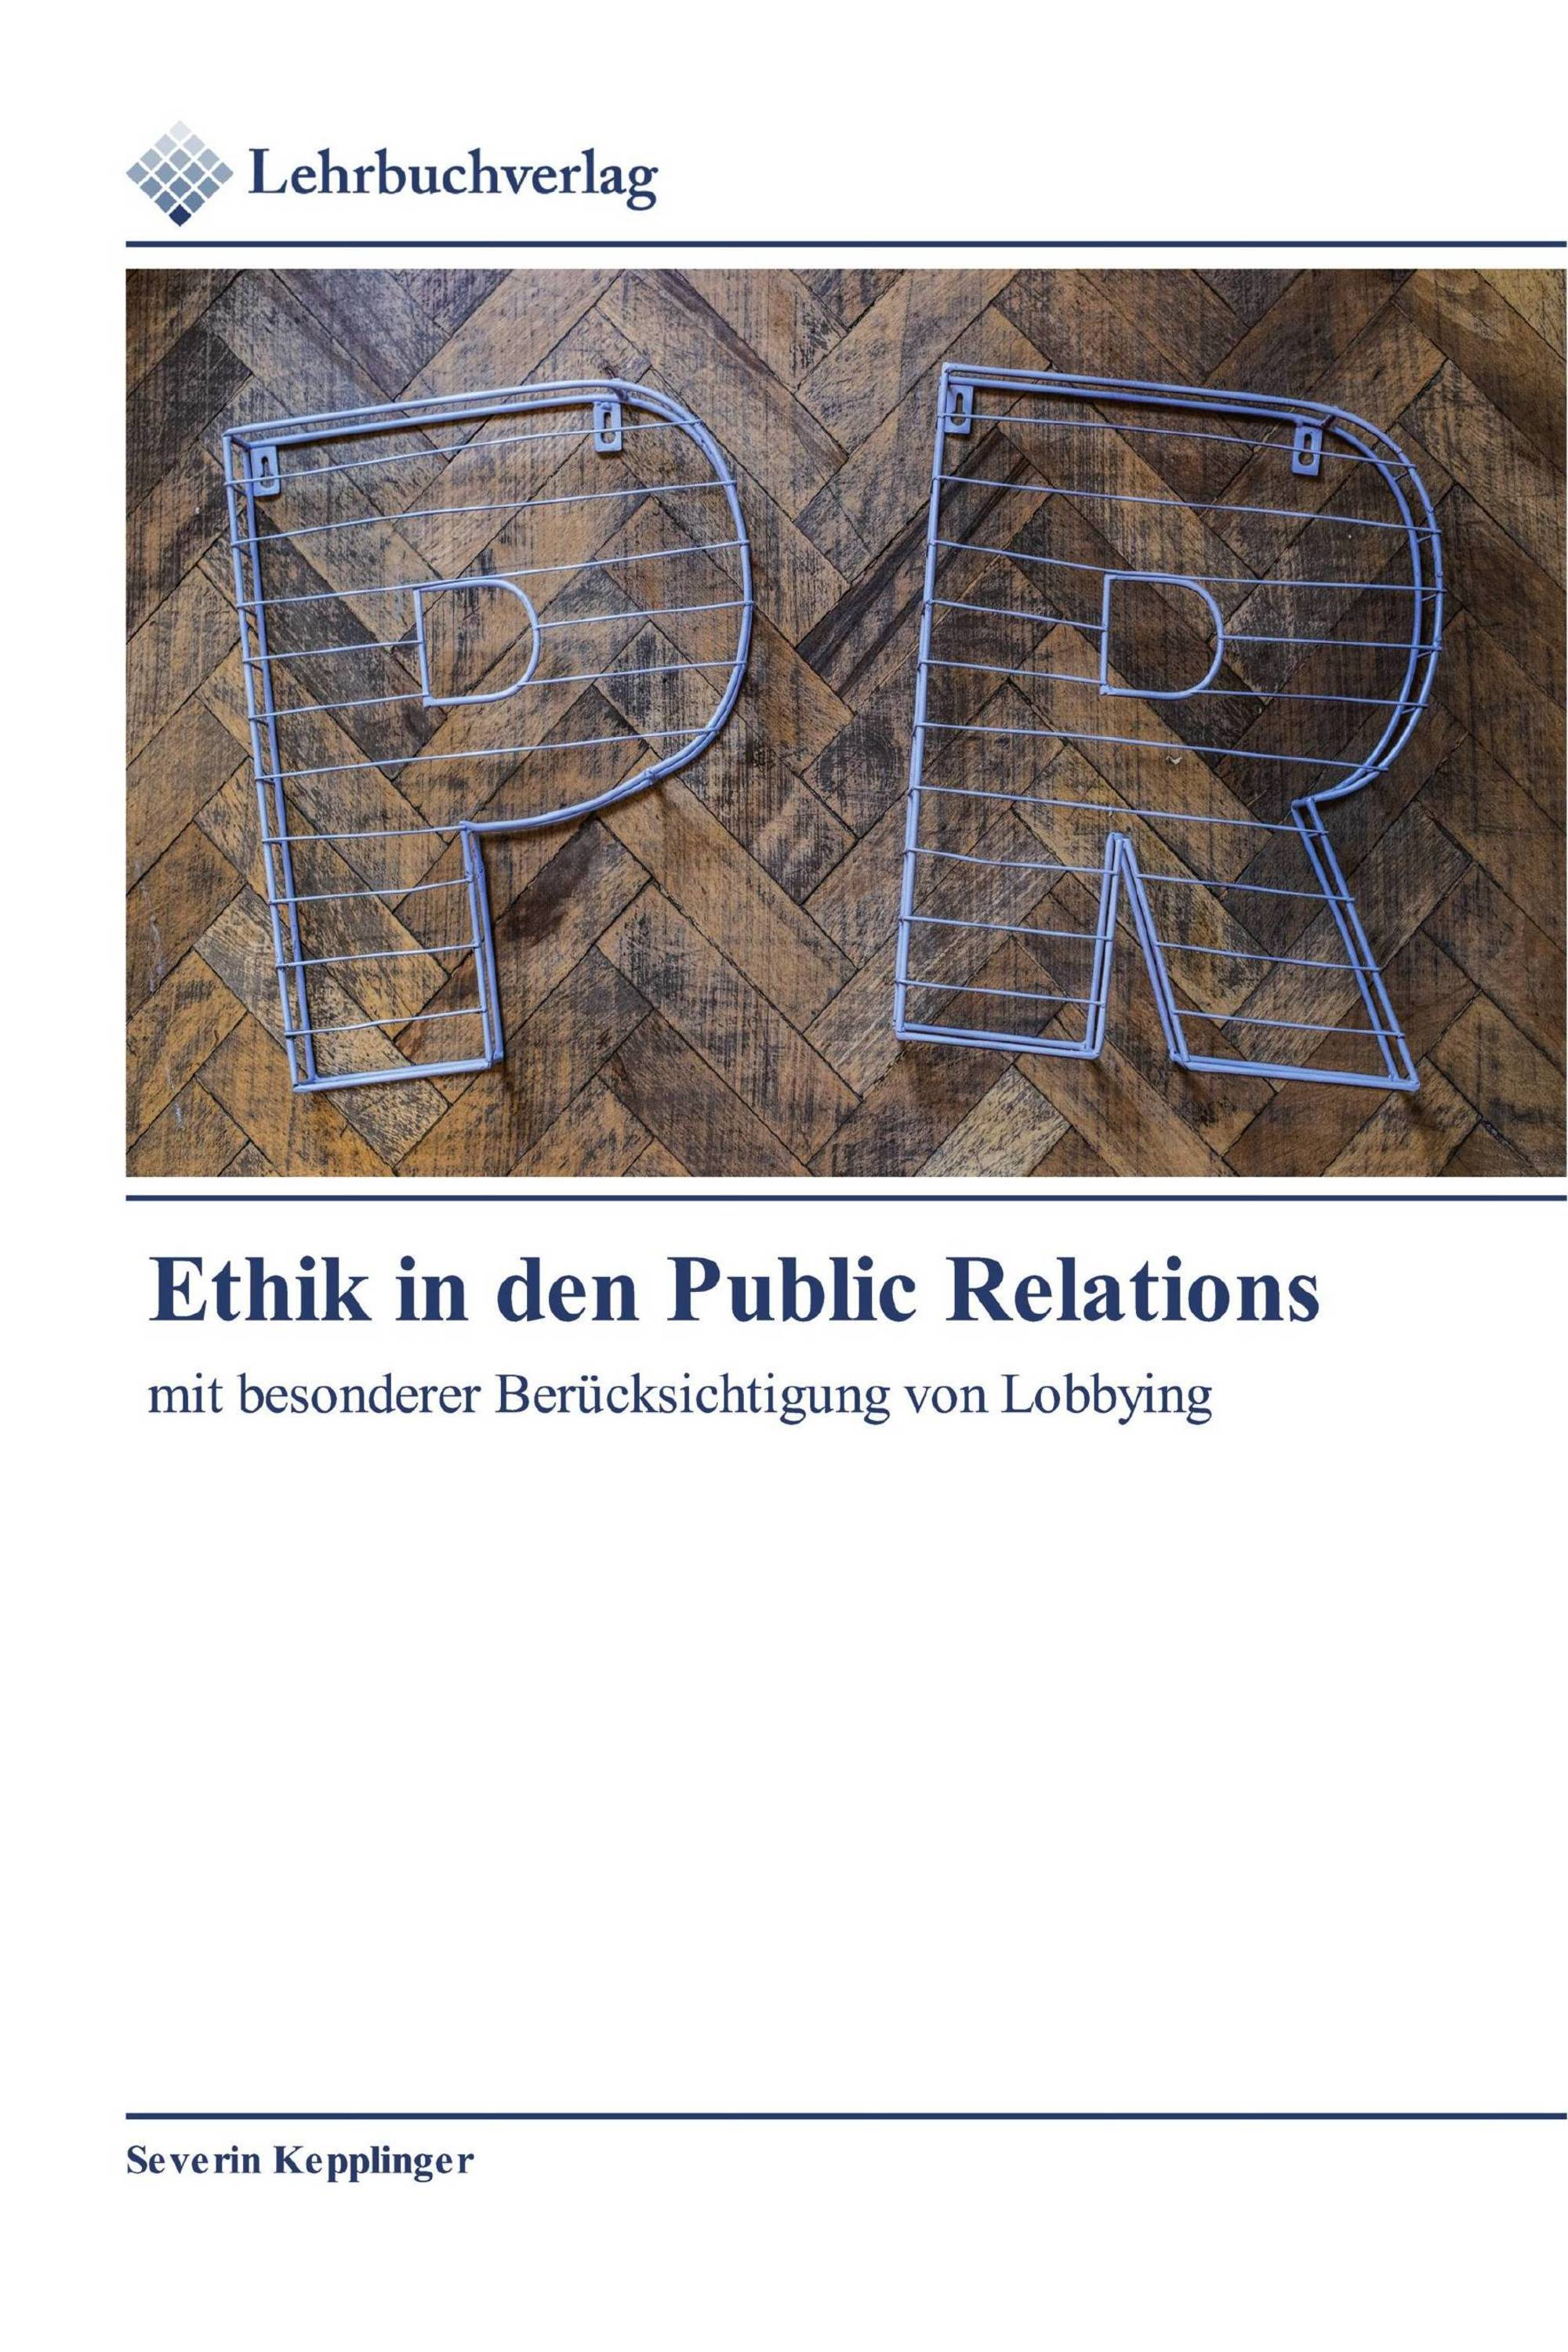 Ethik in den Public Relations